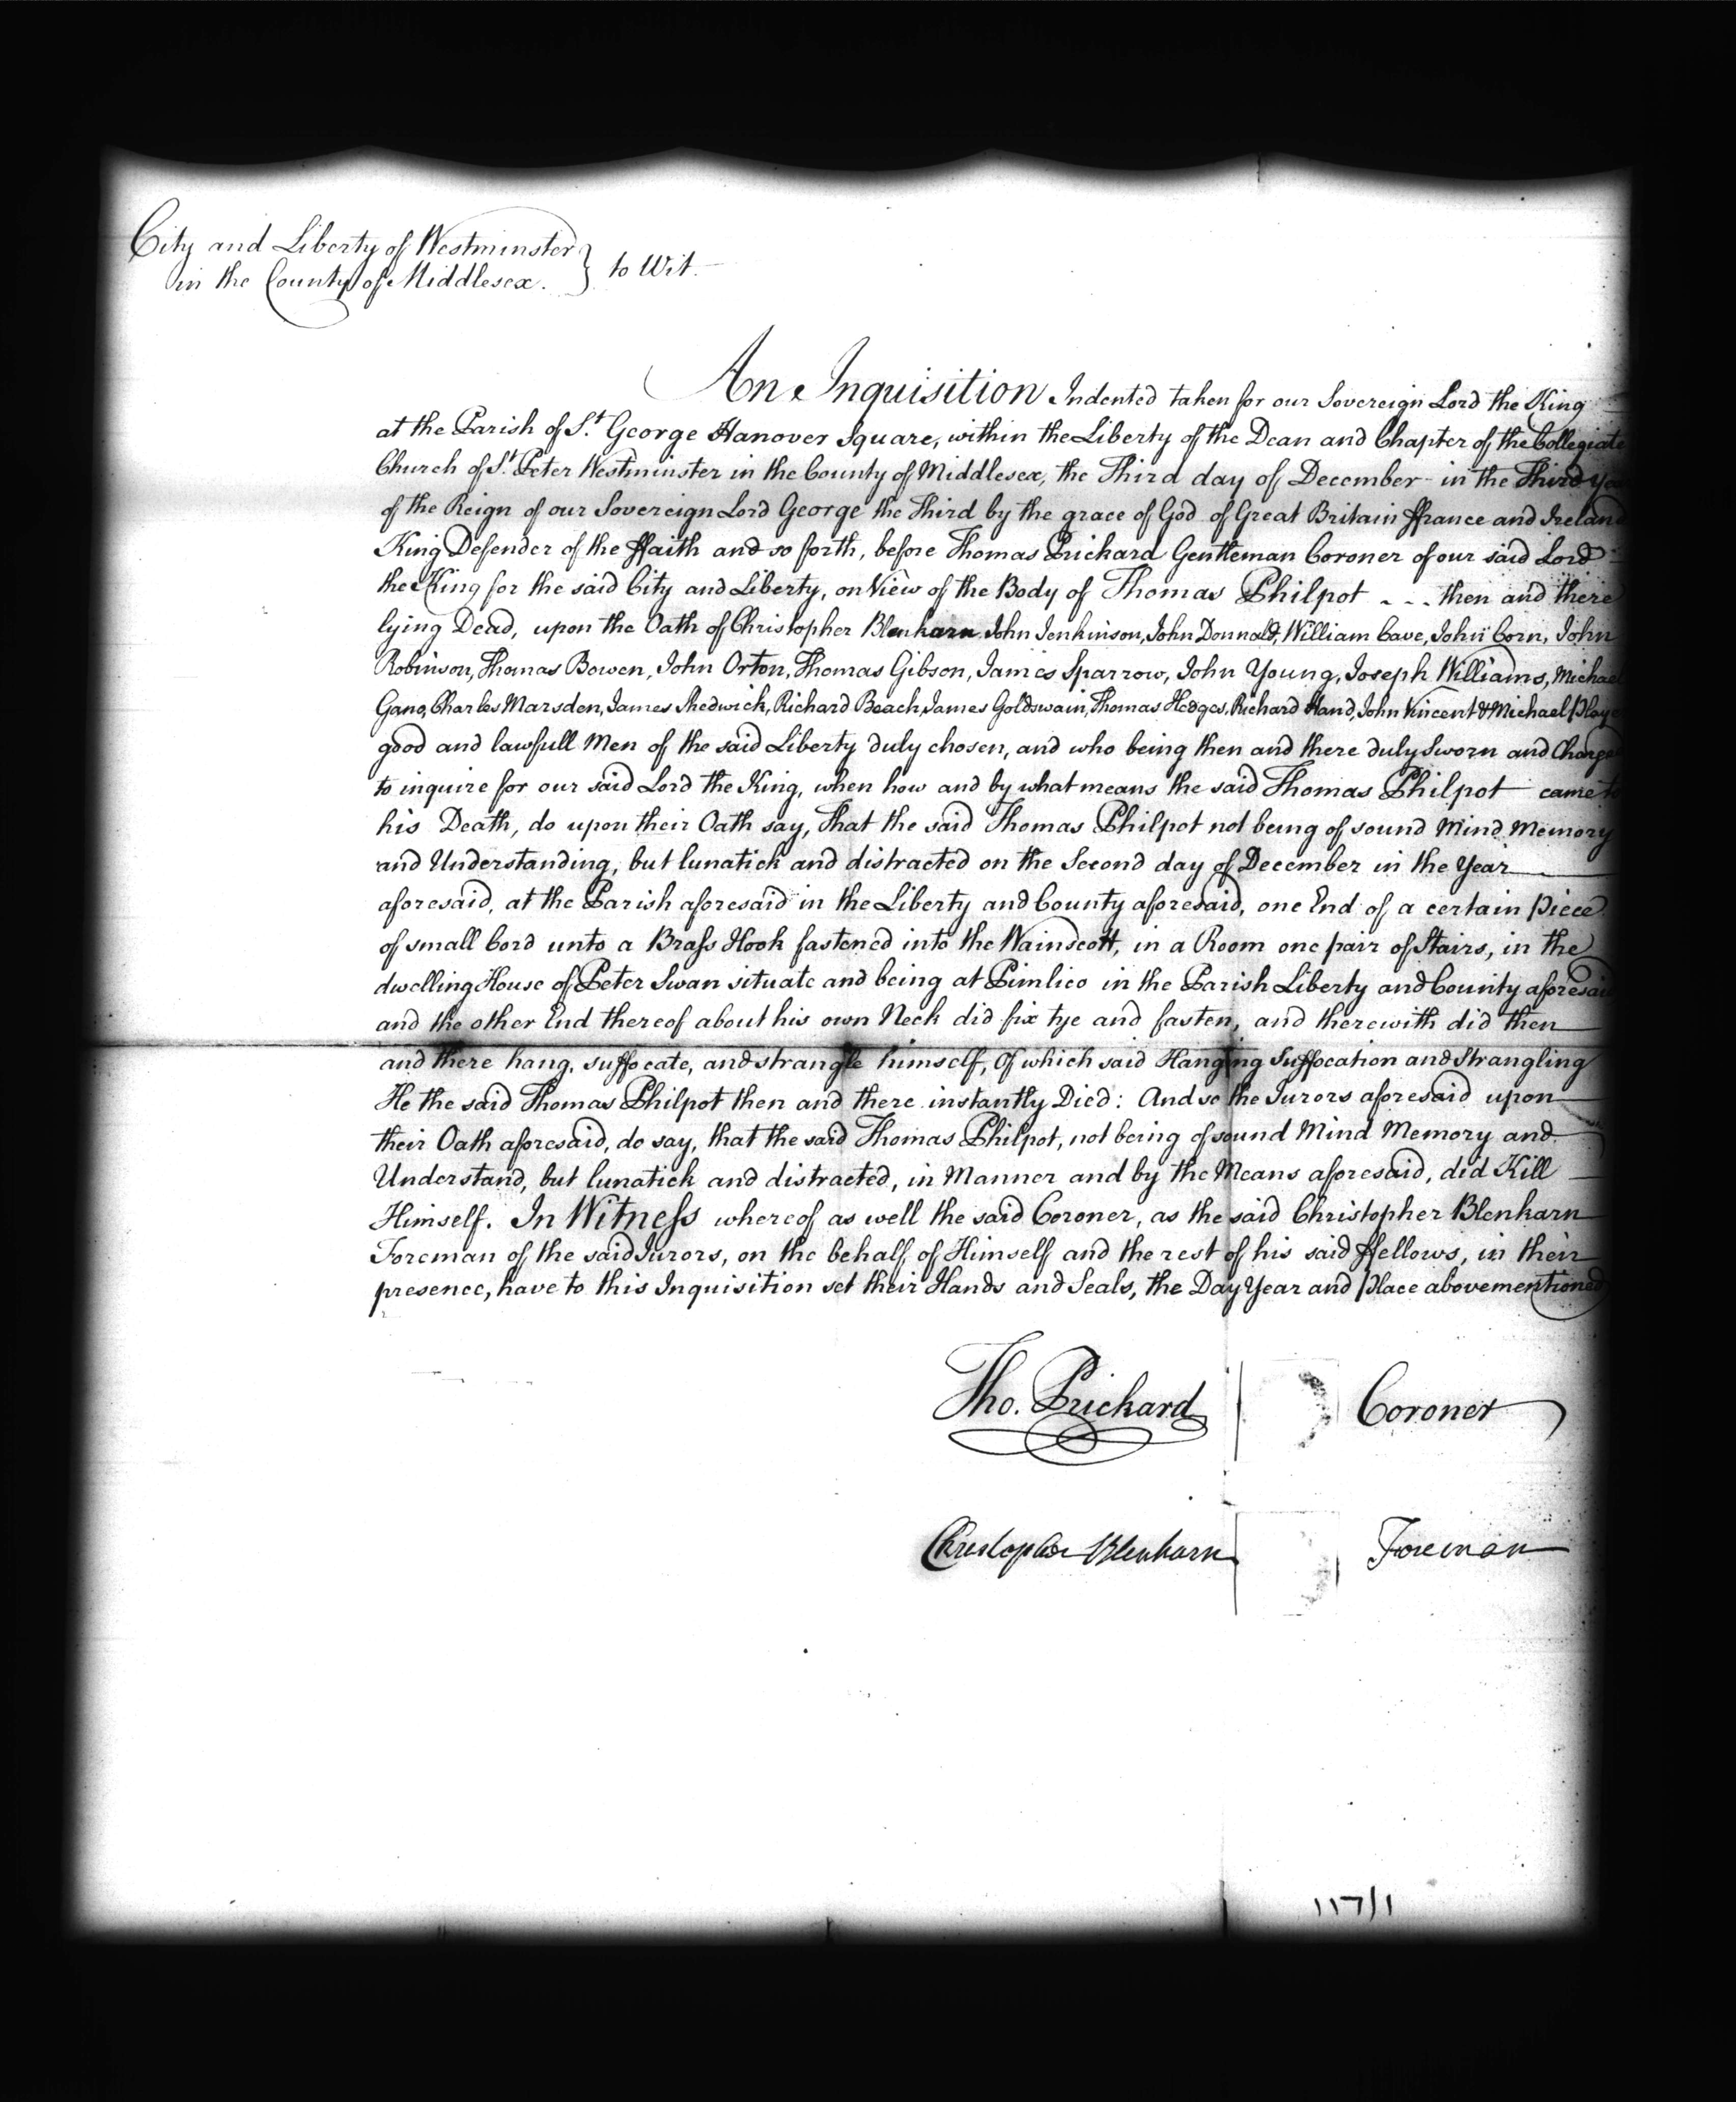 The formal legal text of the coroner's inquest relating to the death of Thomas Philpot, dated 3 December 1762